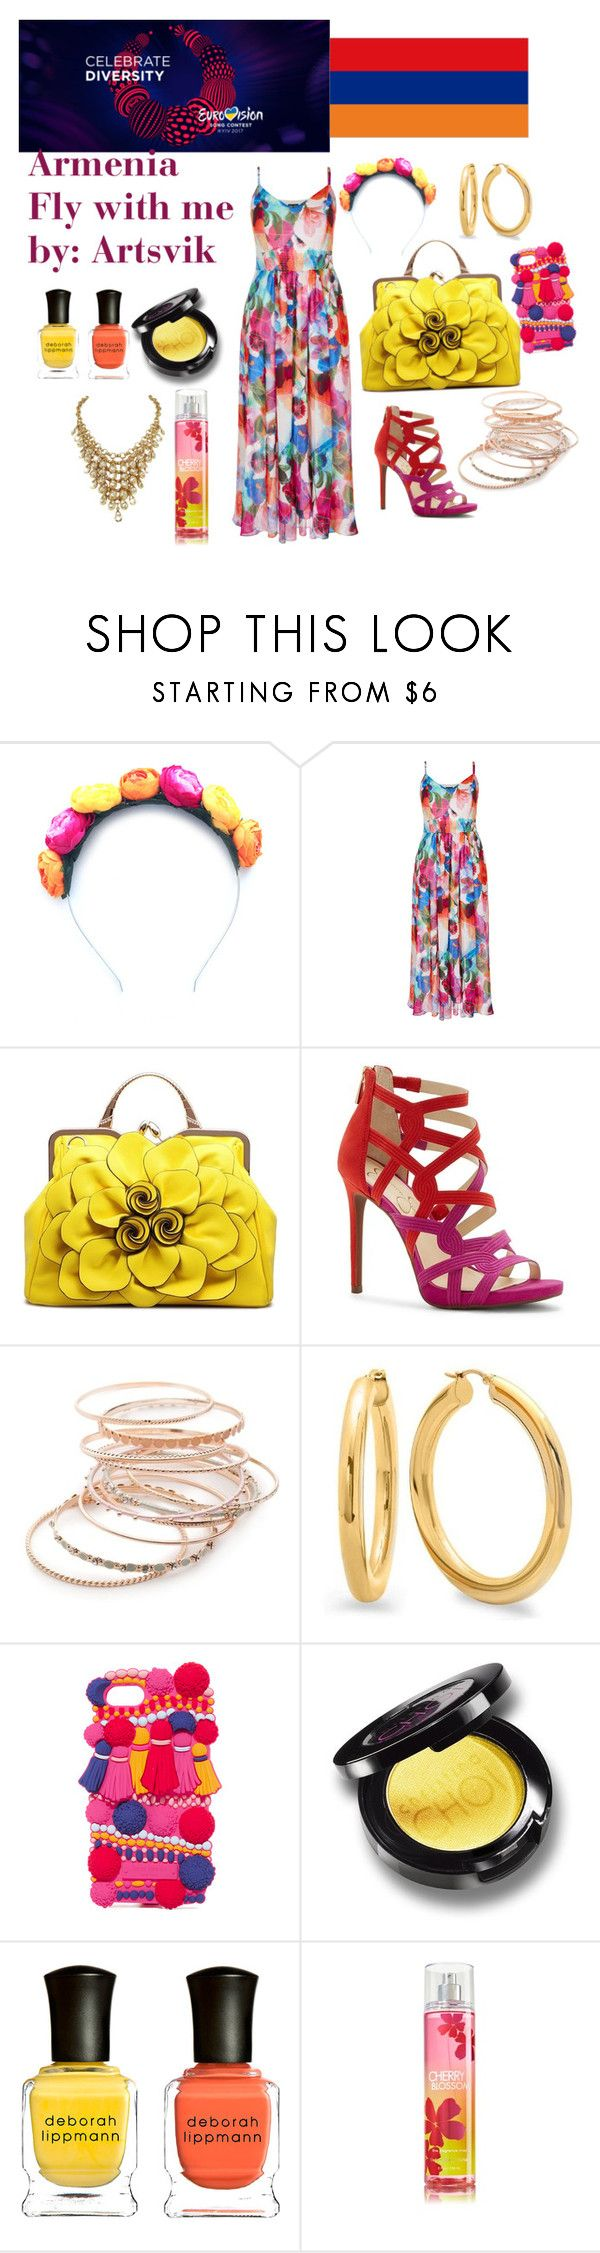 """""""Armenia Eurovision 2017"""" by grace-buerklin ❤ liked on Polyvore featuring Crown and Glory, Red Camel, Kate Spade, Deborah Lippmann and eurovision2017"""